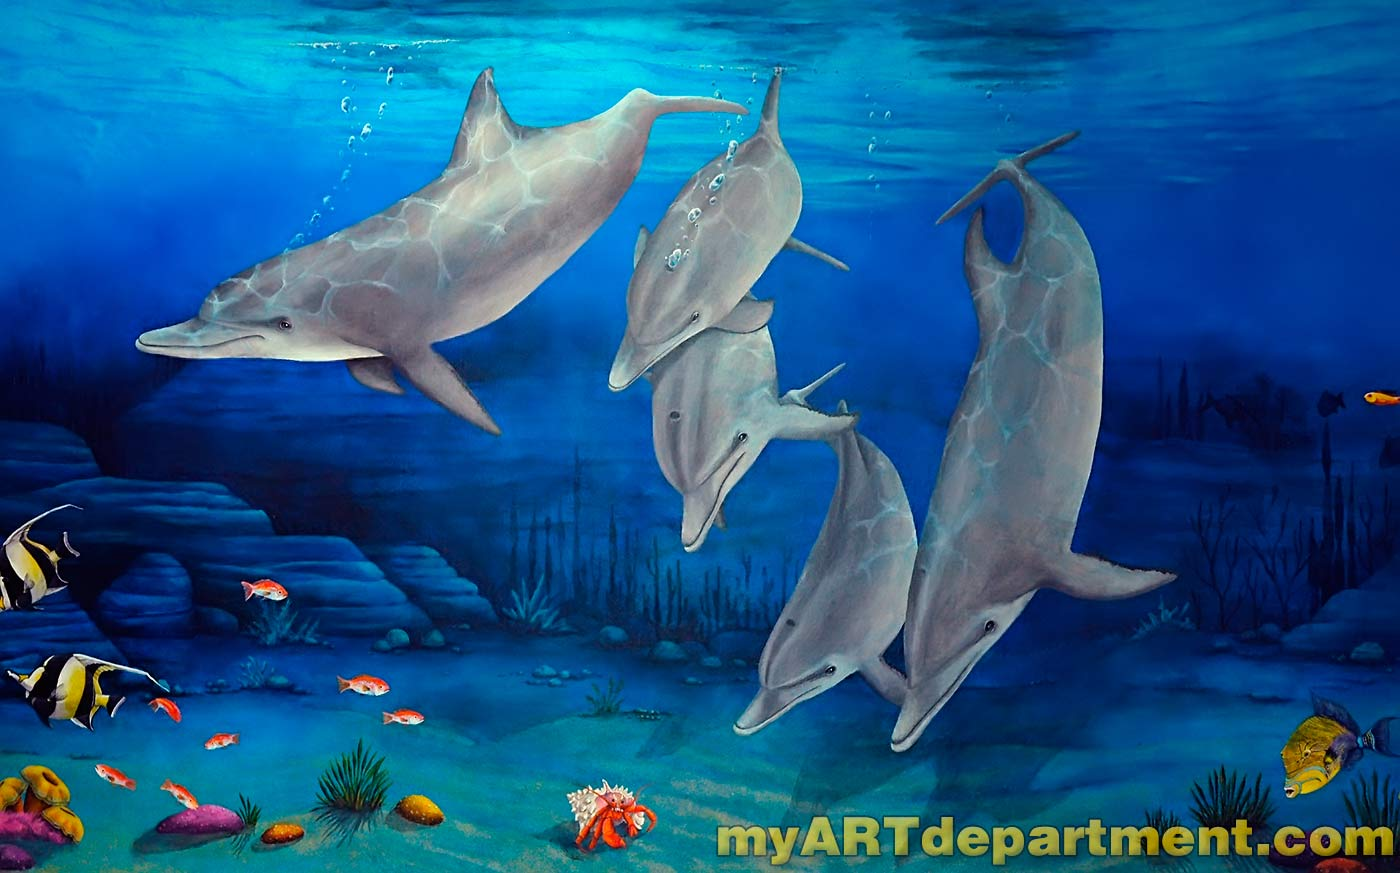 Children 39 s hospital playroom murals summerlin las vegas for Diving and fishing mural